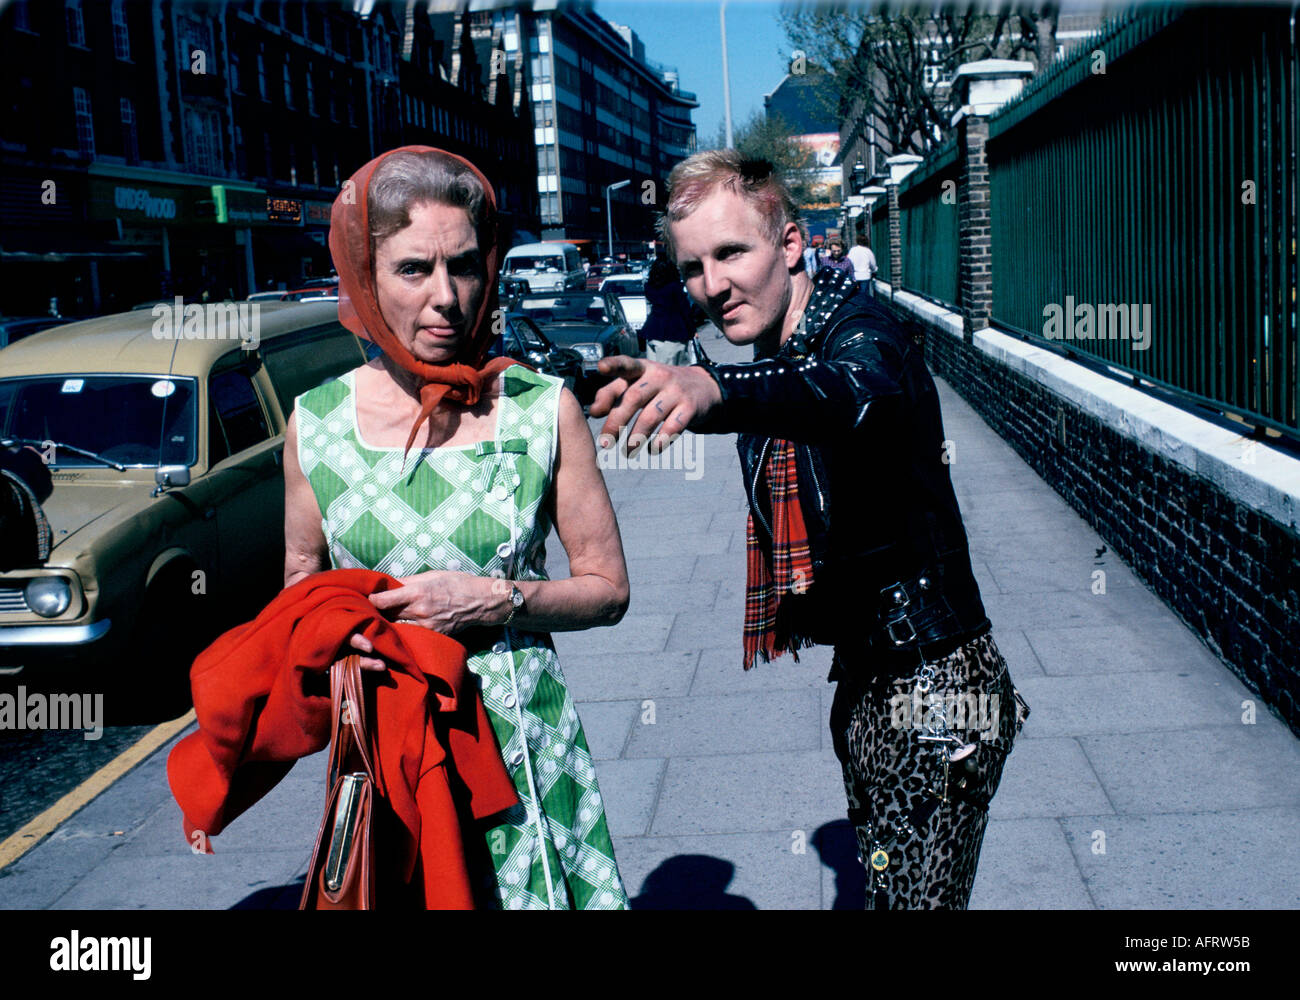 Punk hilft Passanten auf Kings Road Chelsea London Woman beim Fotografen in den 1970er Jahren UK 1979 HOMER SYKES Stockfoto